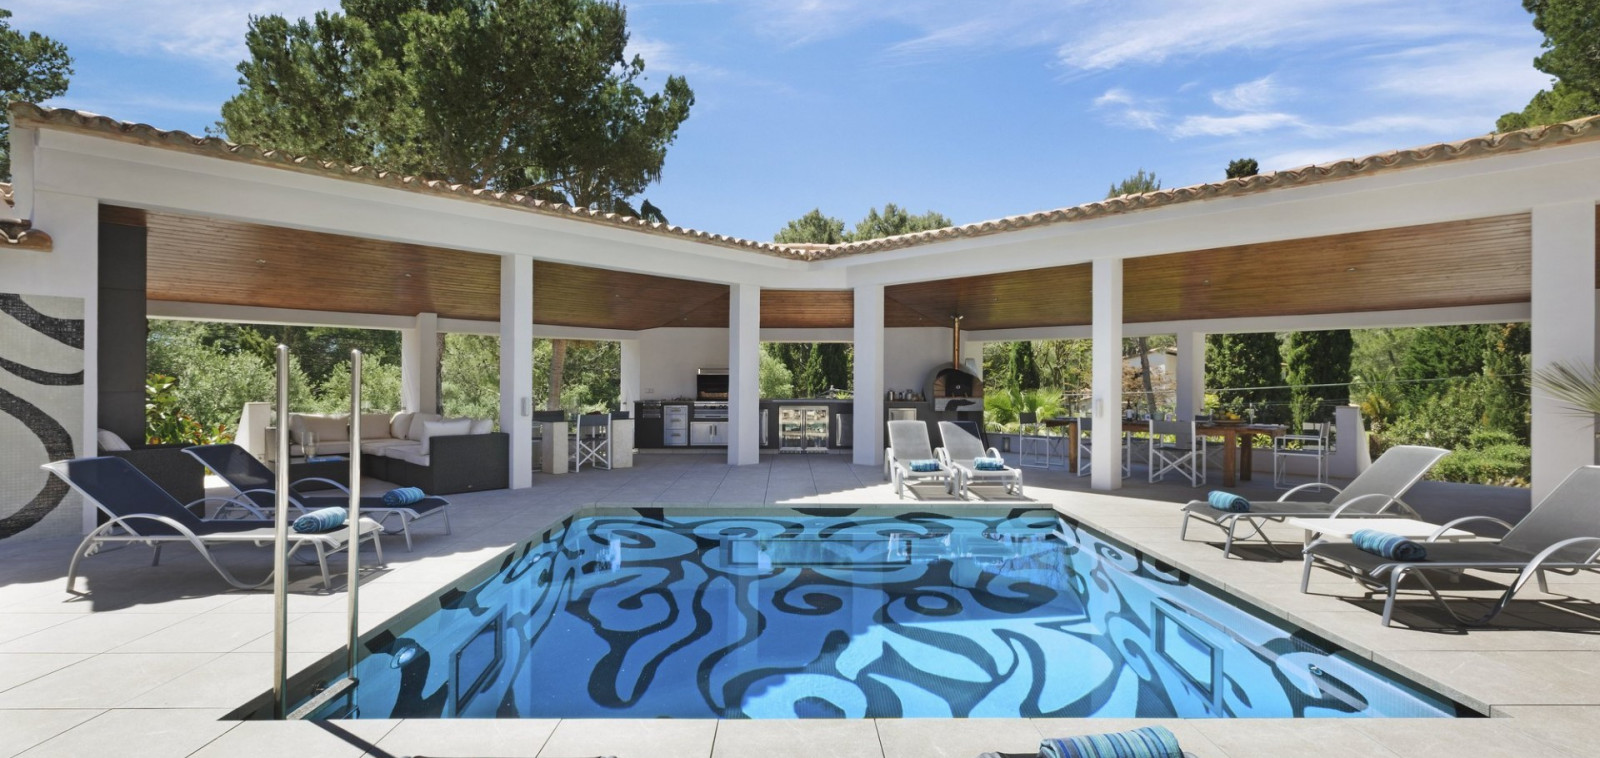 Luxury Villas Algarve to Rent for Holiday in Portugal with Private Pool - Villa Cuda